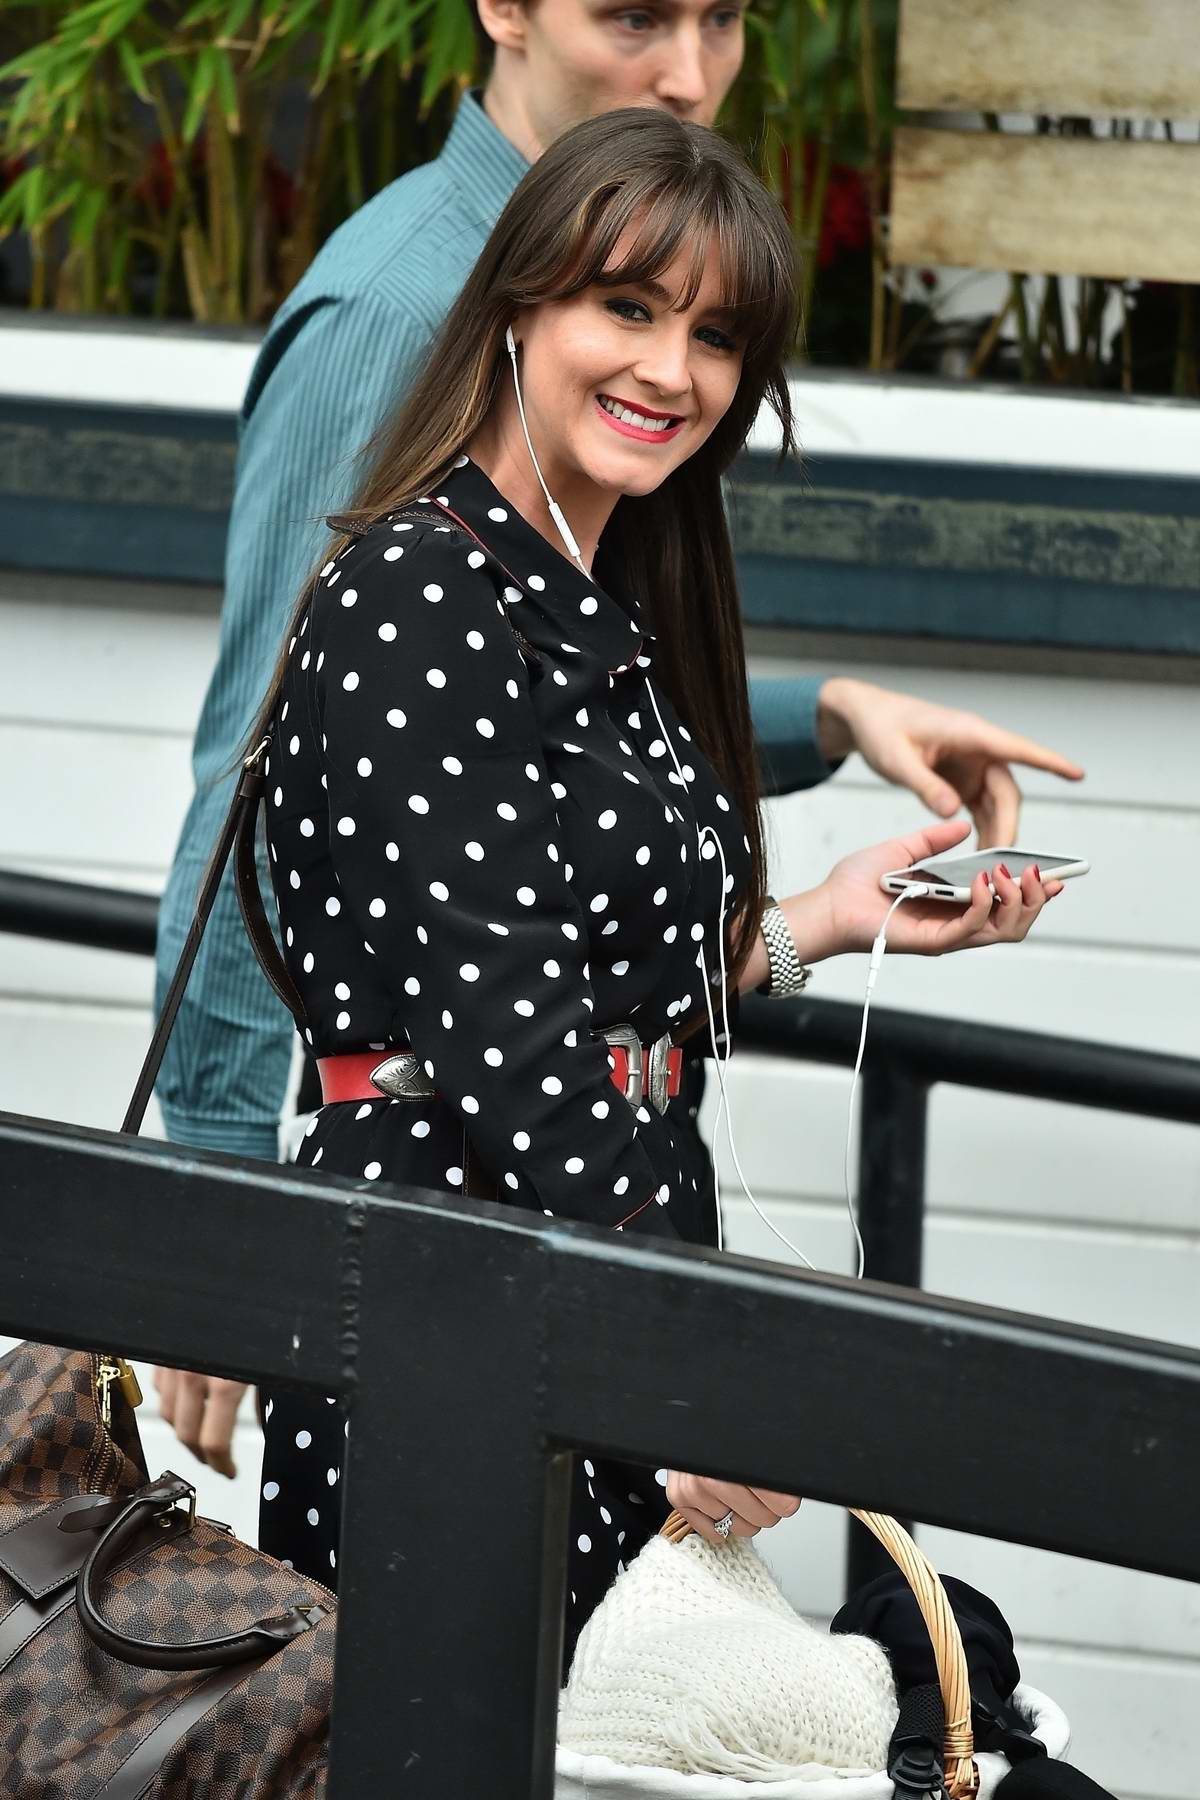 Brooke Vincent spotted at the ITV studios wearing a polka dot dress in London